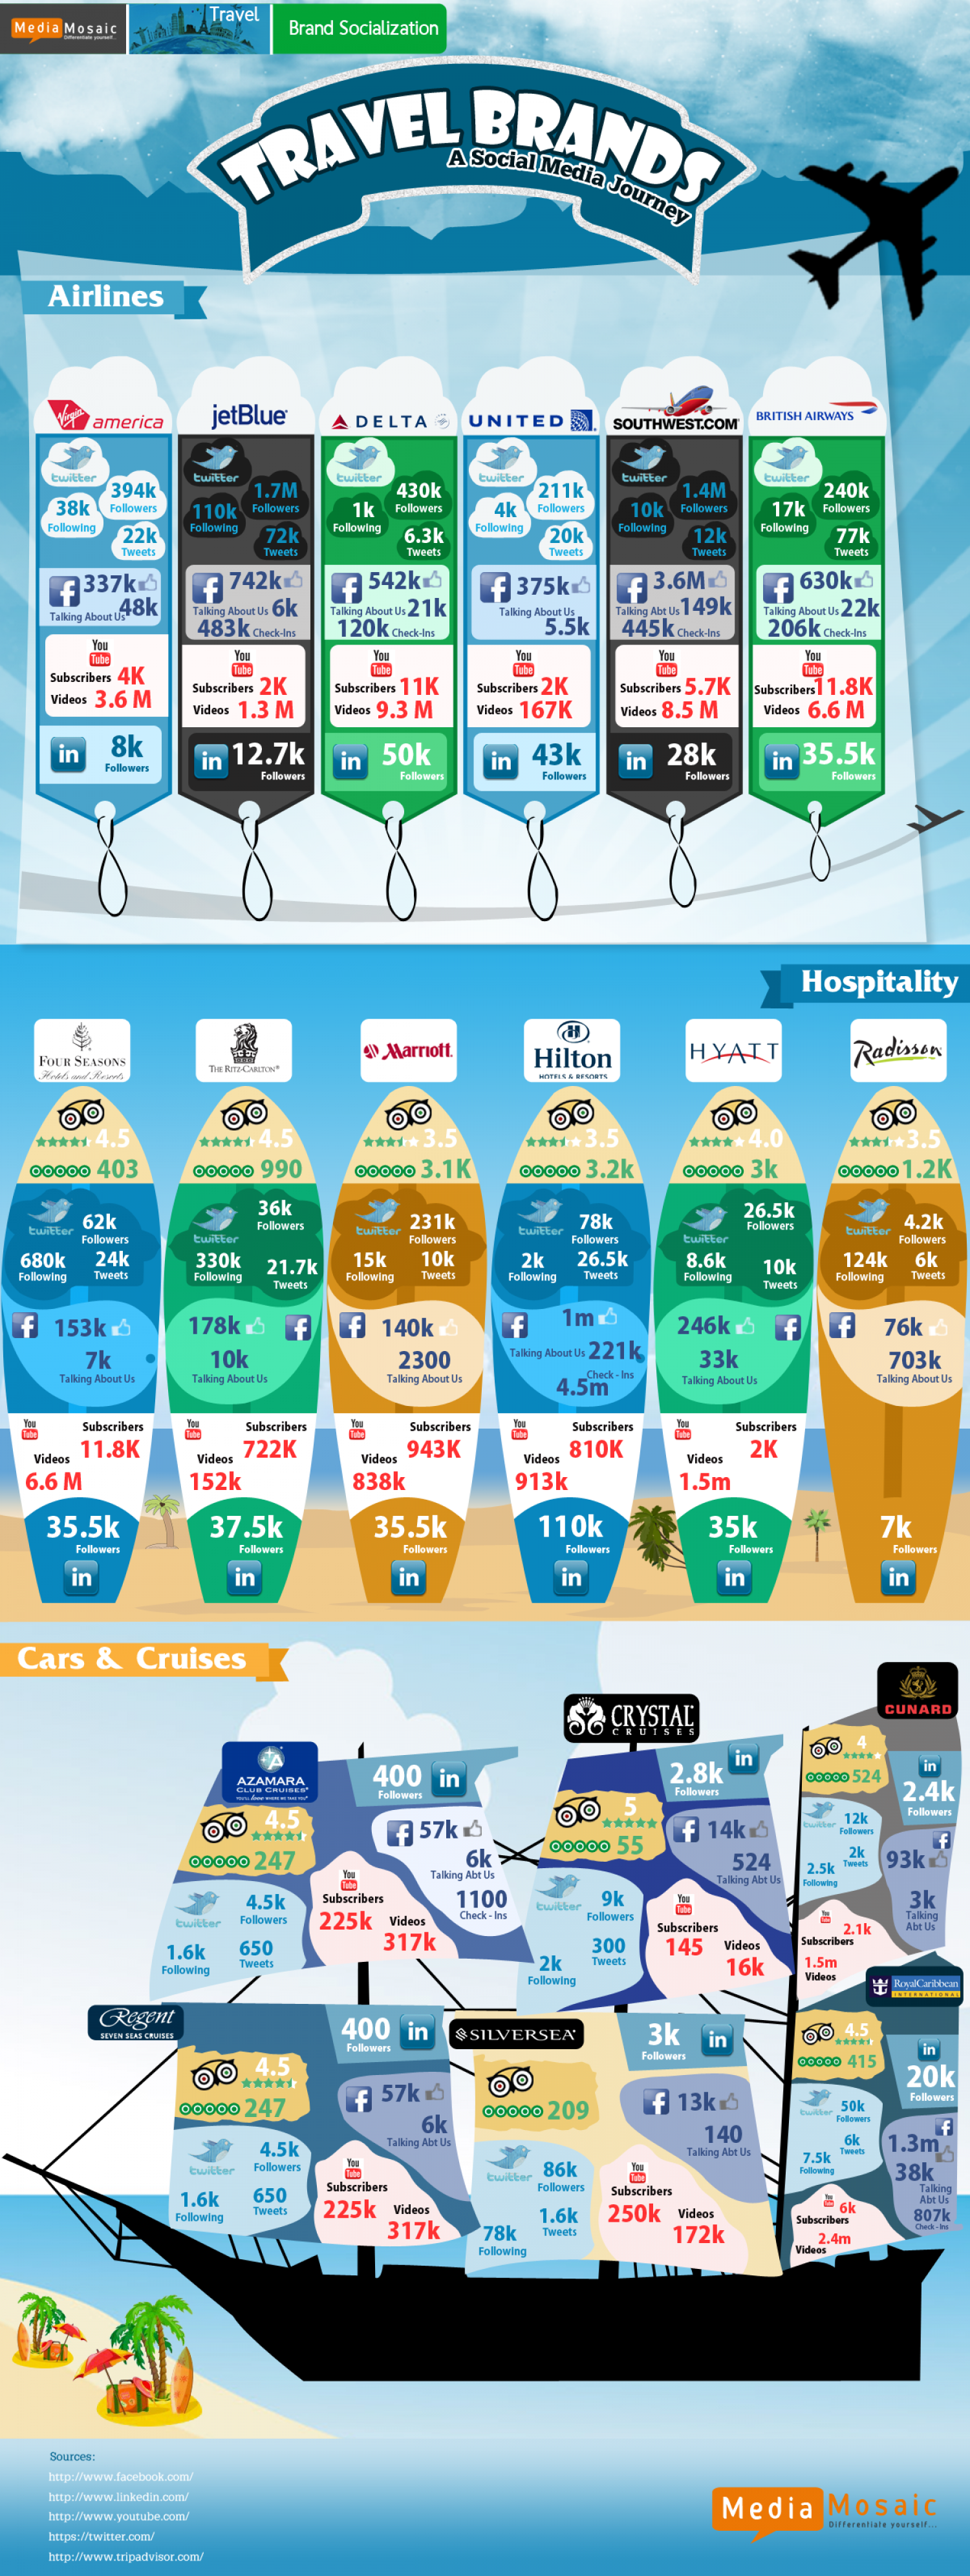 Travel Brands And Their Social Media Journey Infographic